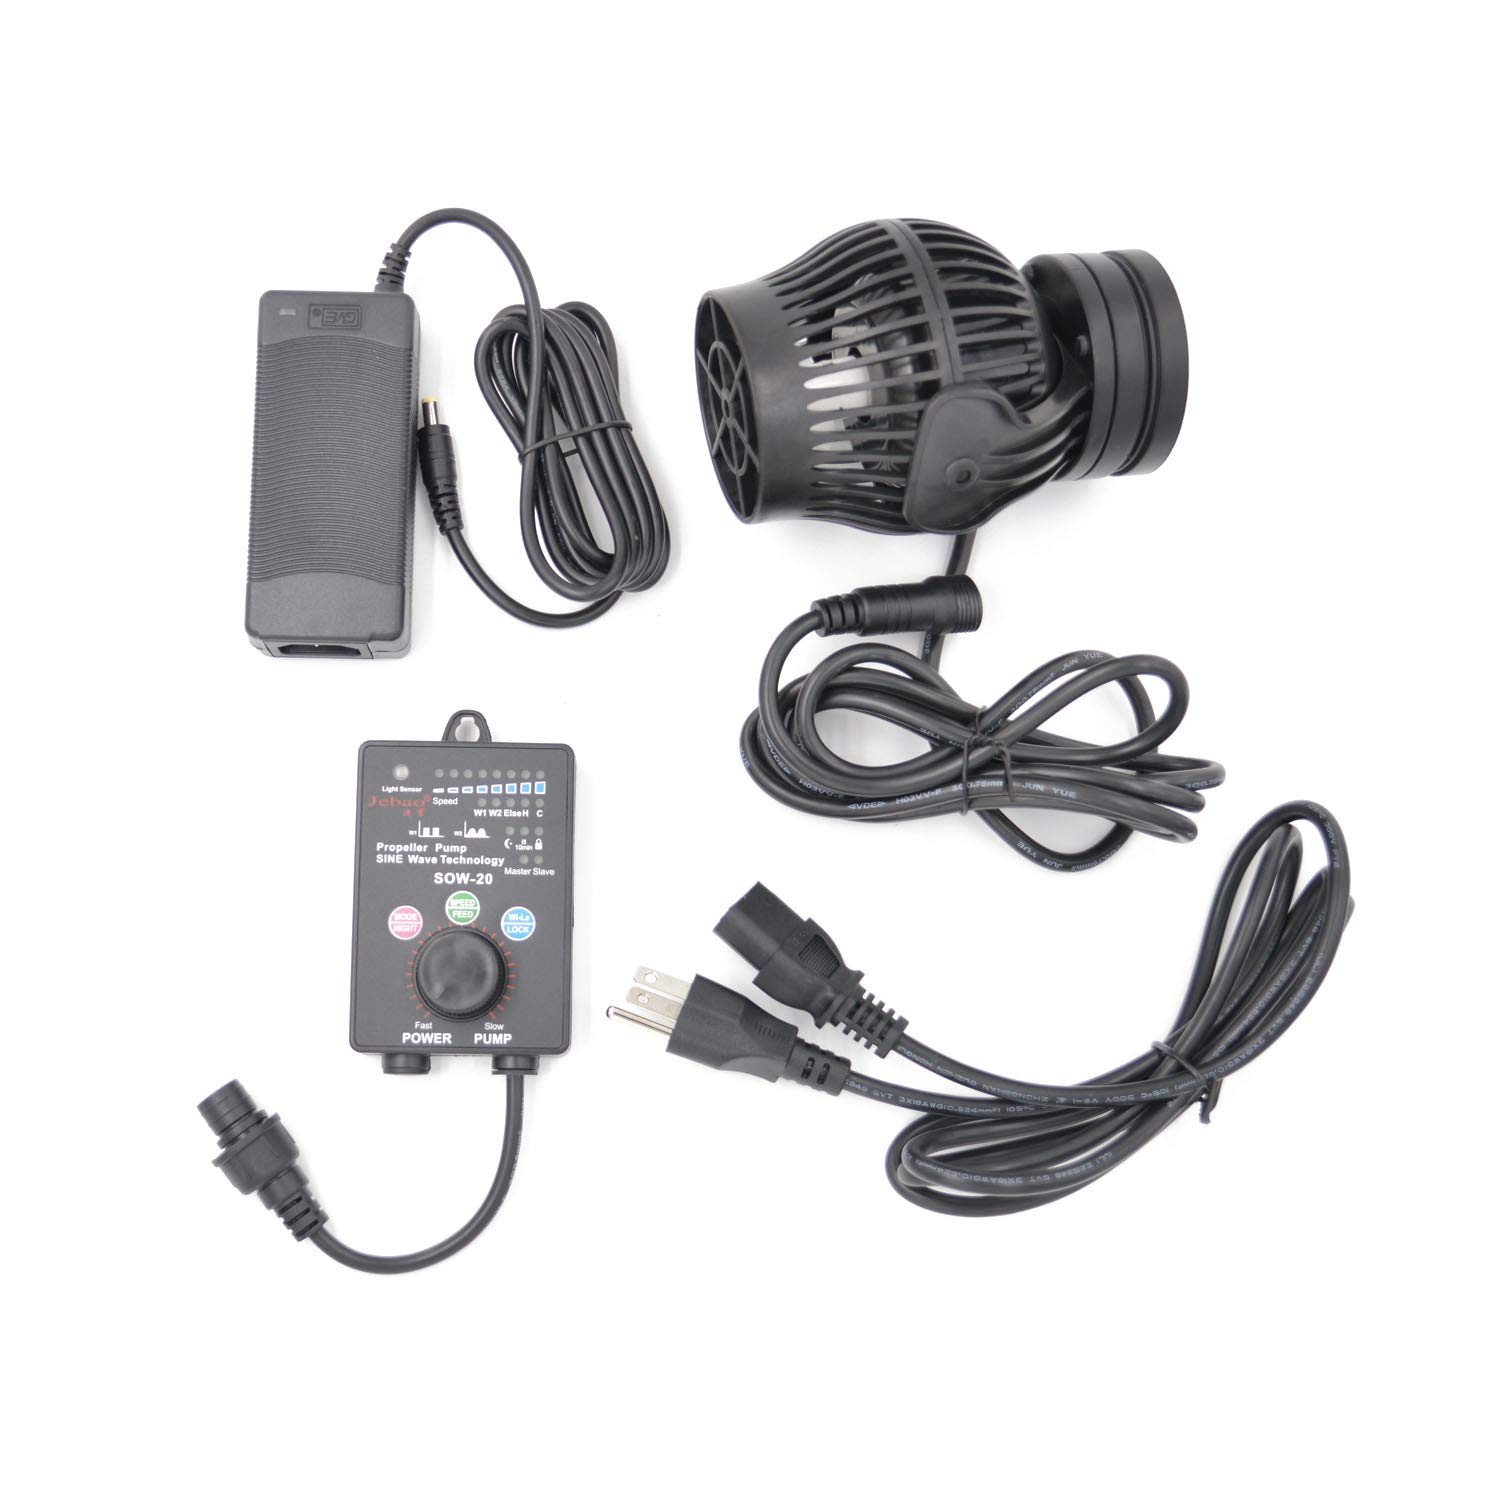 Jebao SOW Wave Maker Flow Pump with Controller for Marine Reef Aquarium (SOW-20) by Jebao